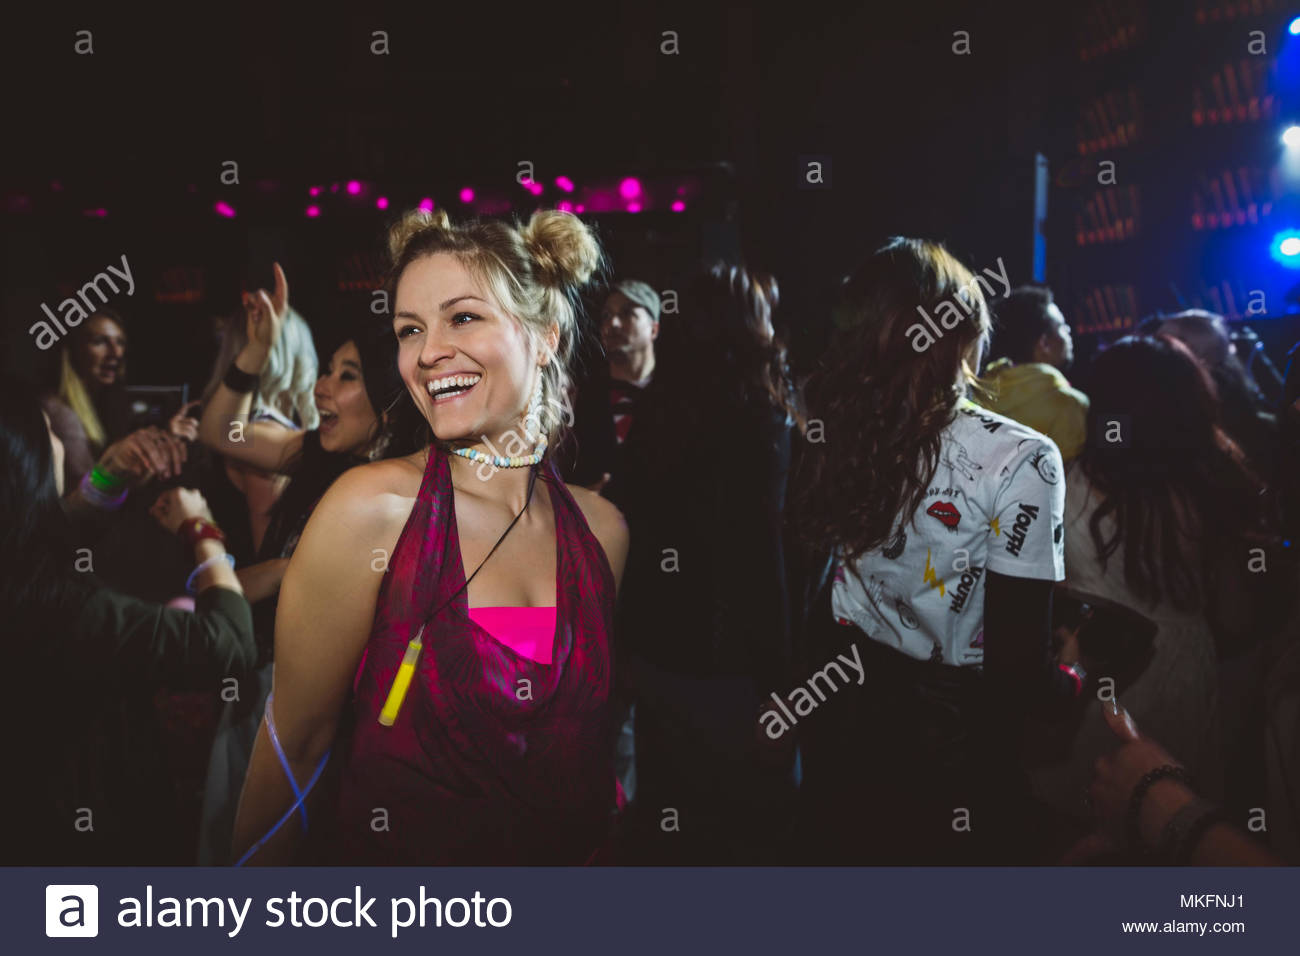 Confident, carefree female millennial dancing and partying in nightclub - Stock Image